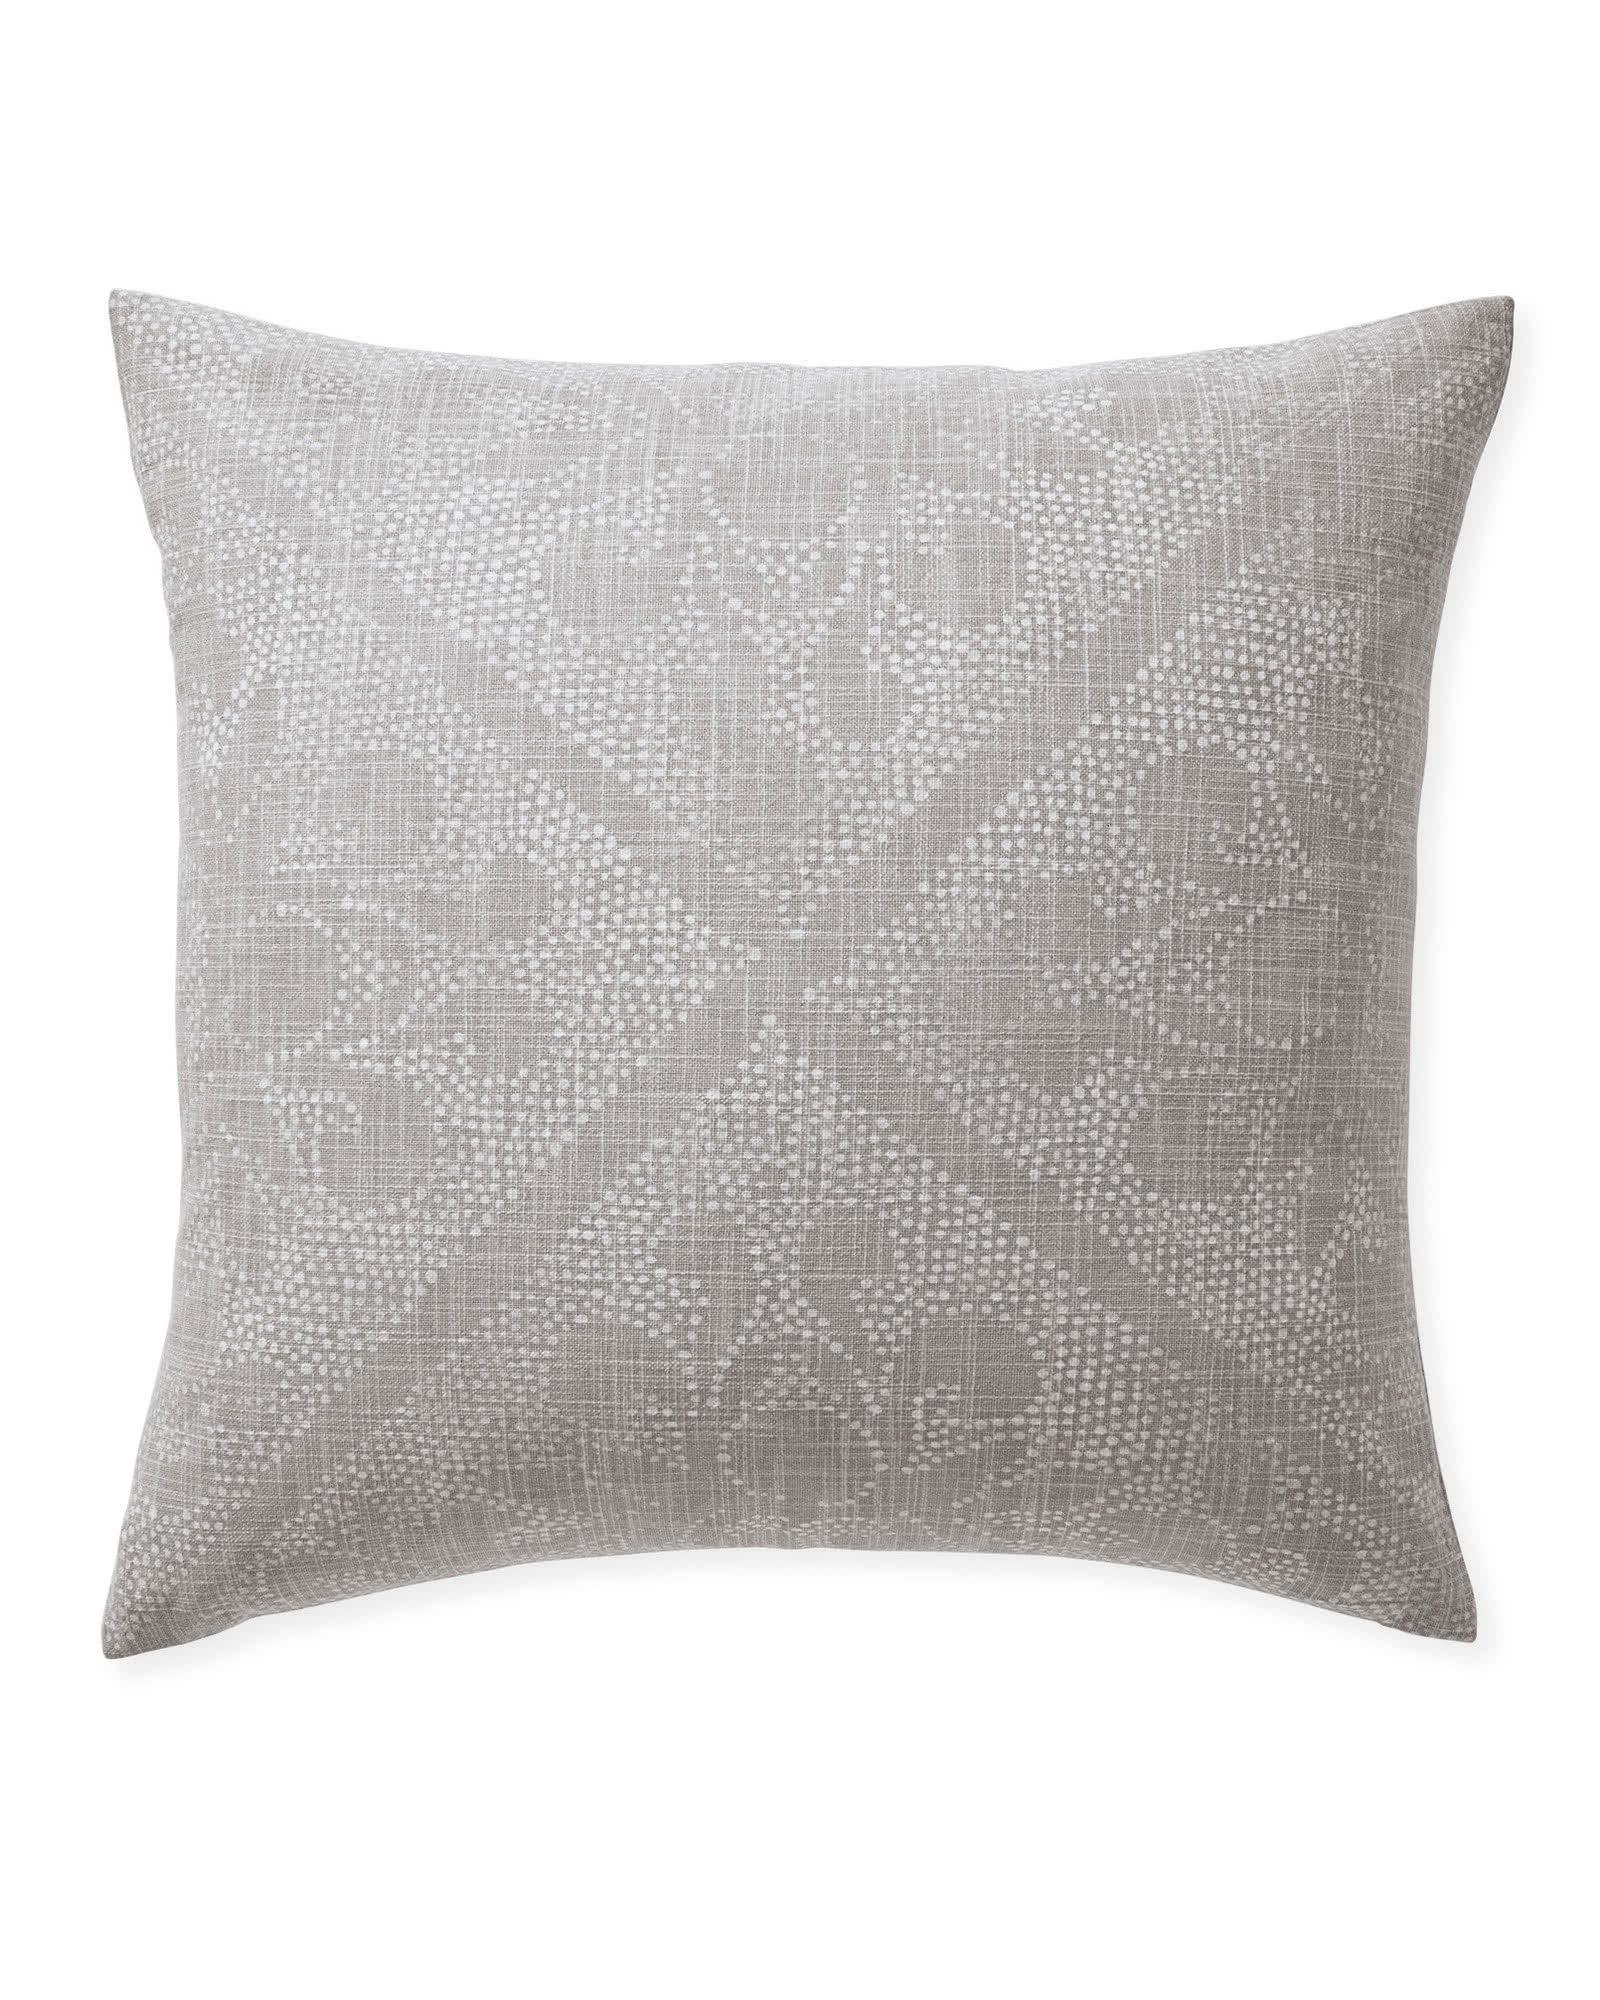 Camille Scroll Pillow Cover, Smoke